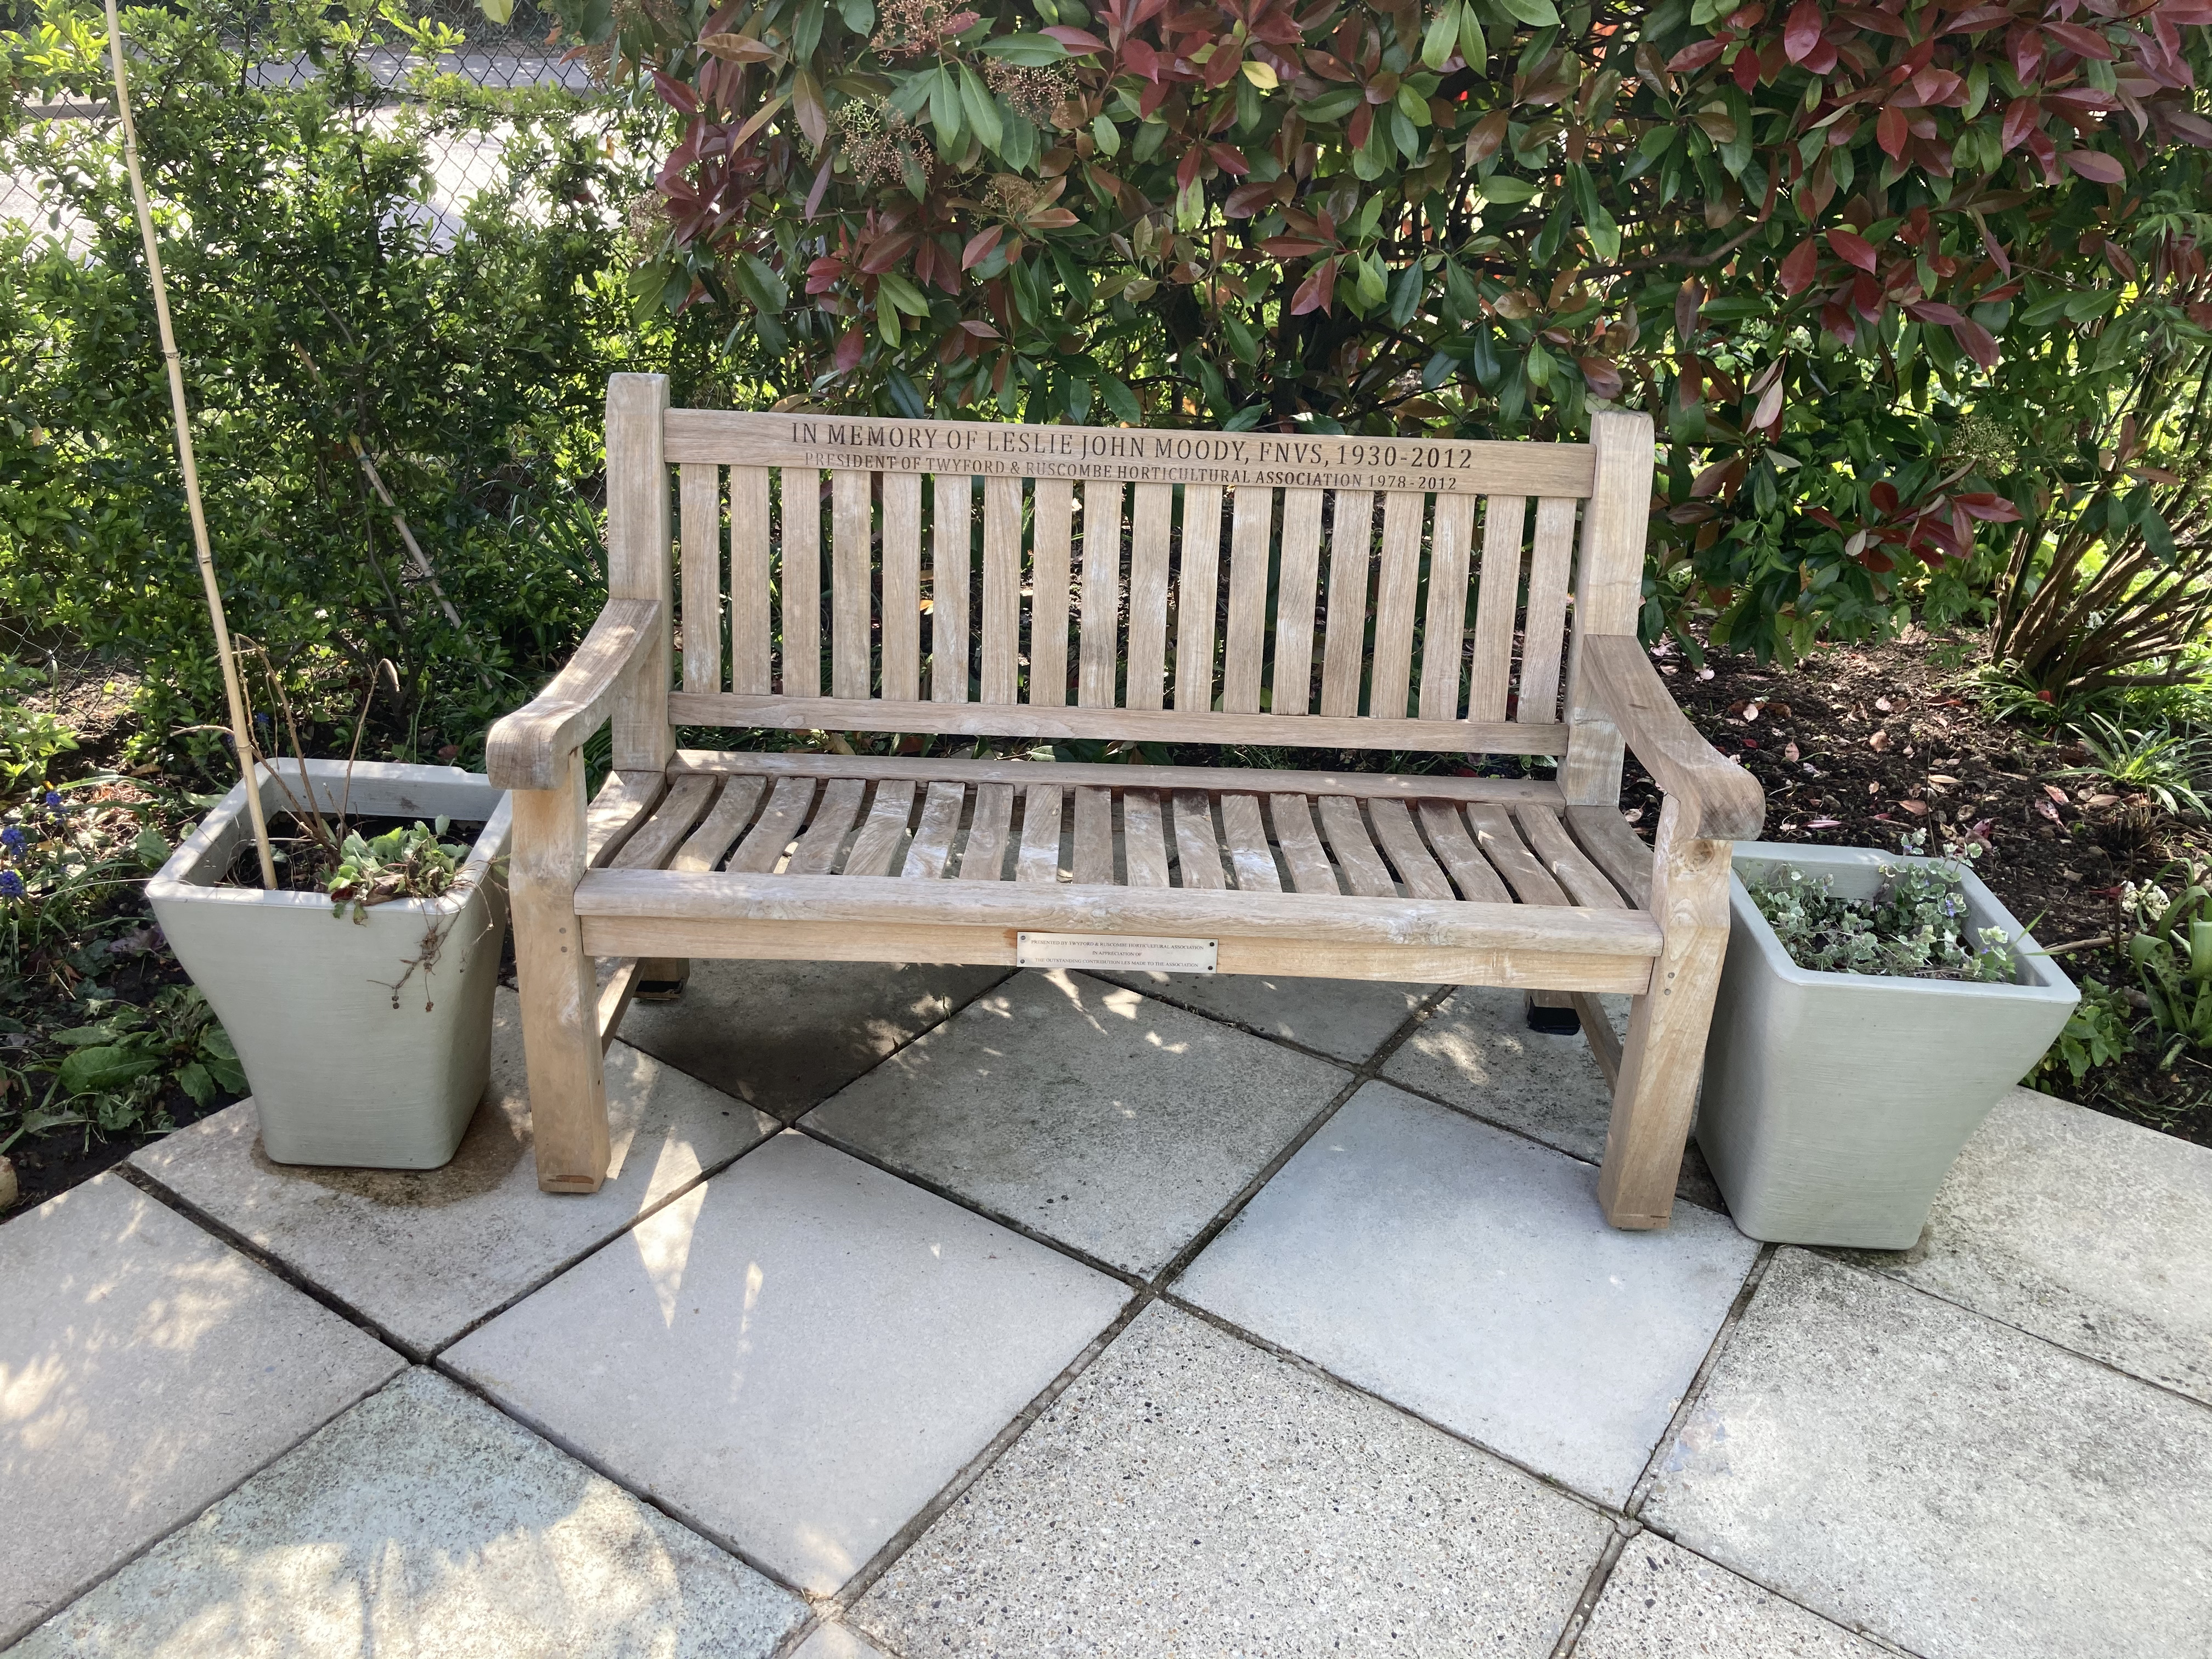 The memorial bench to our former President Les Moody